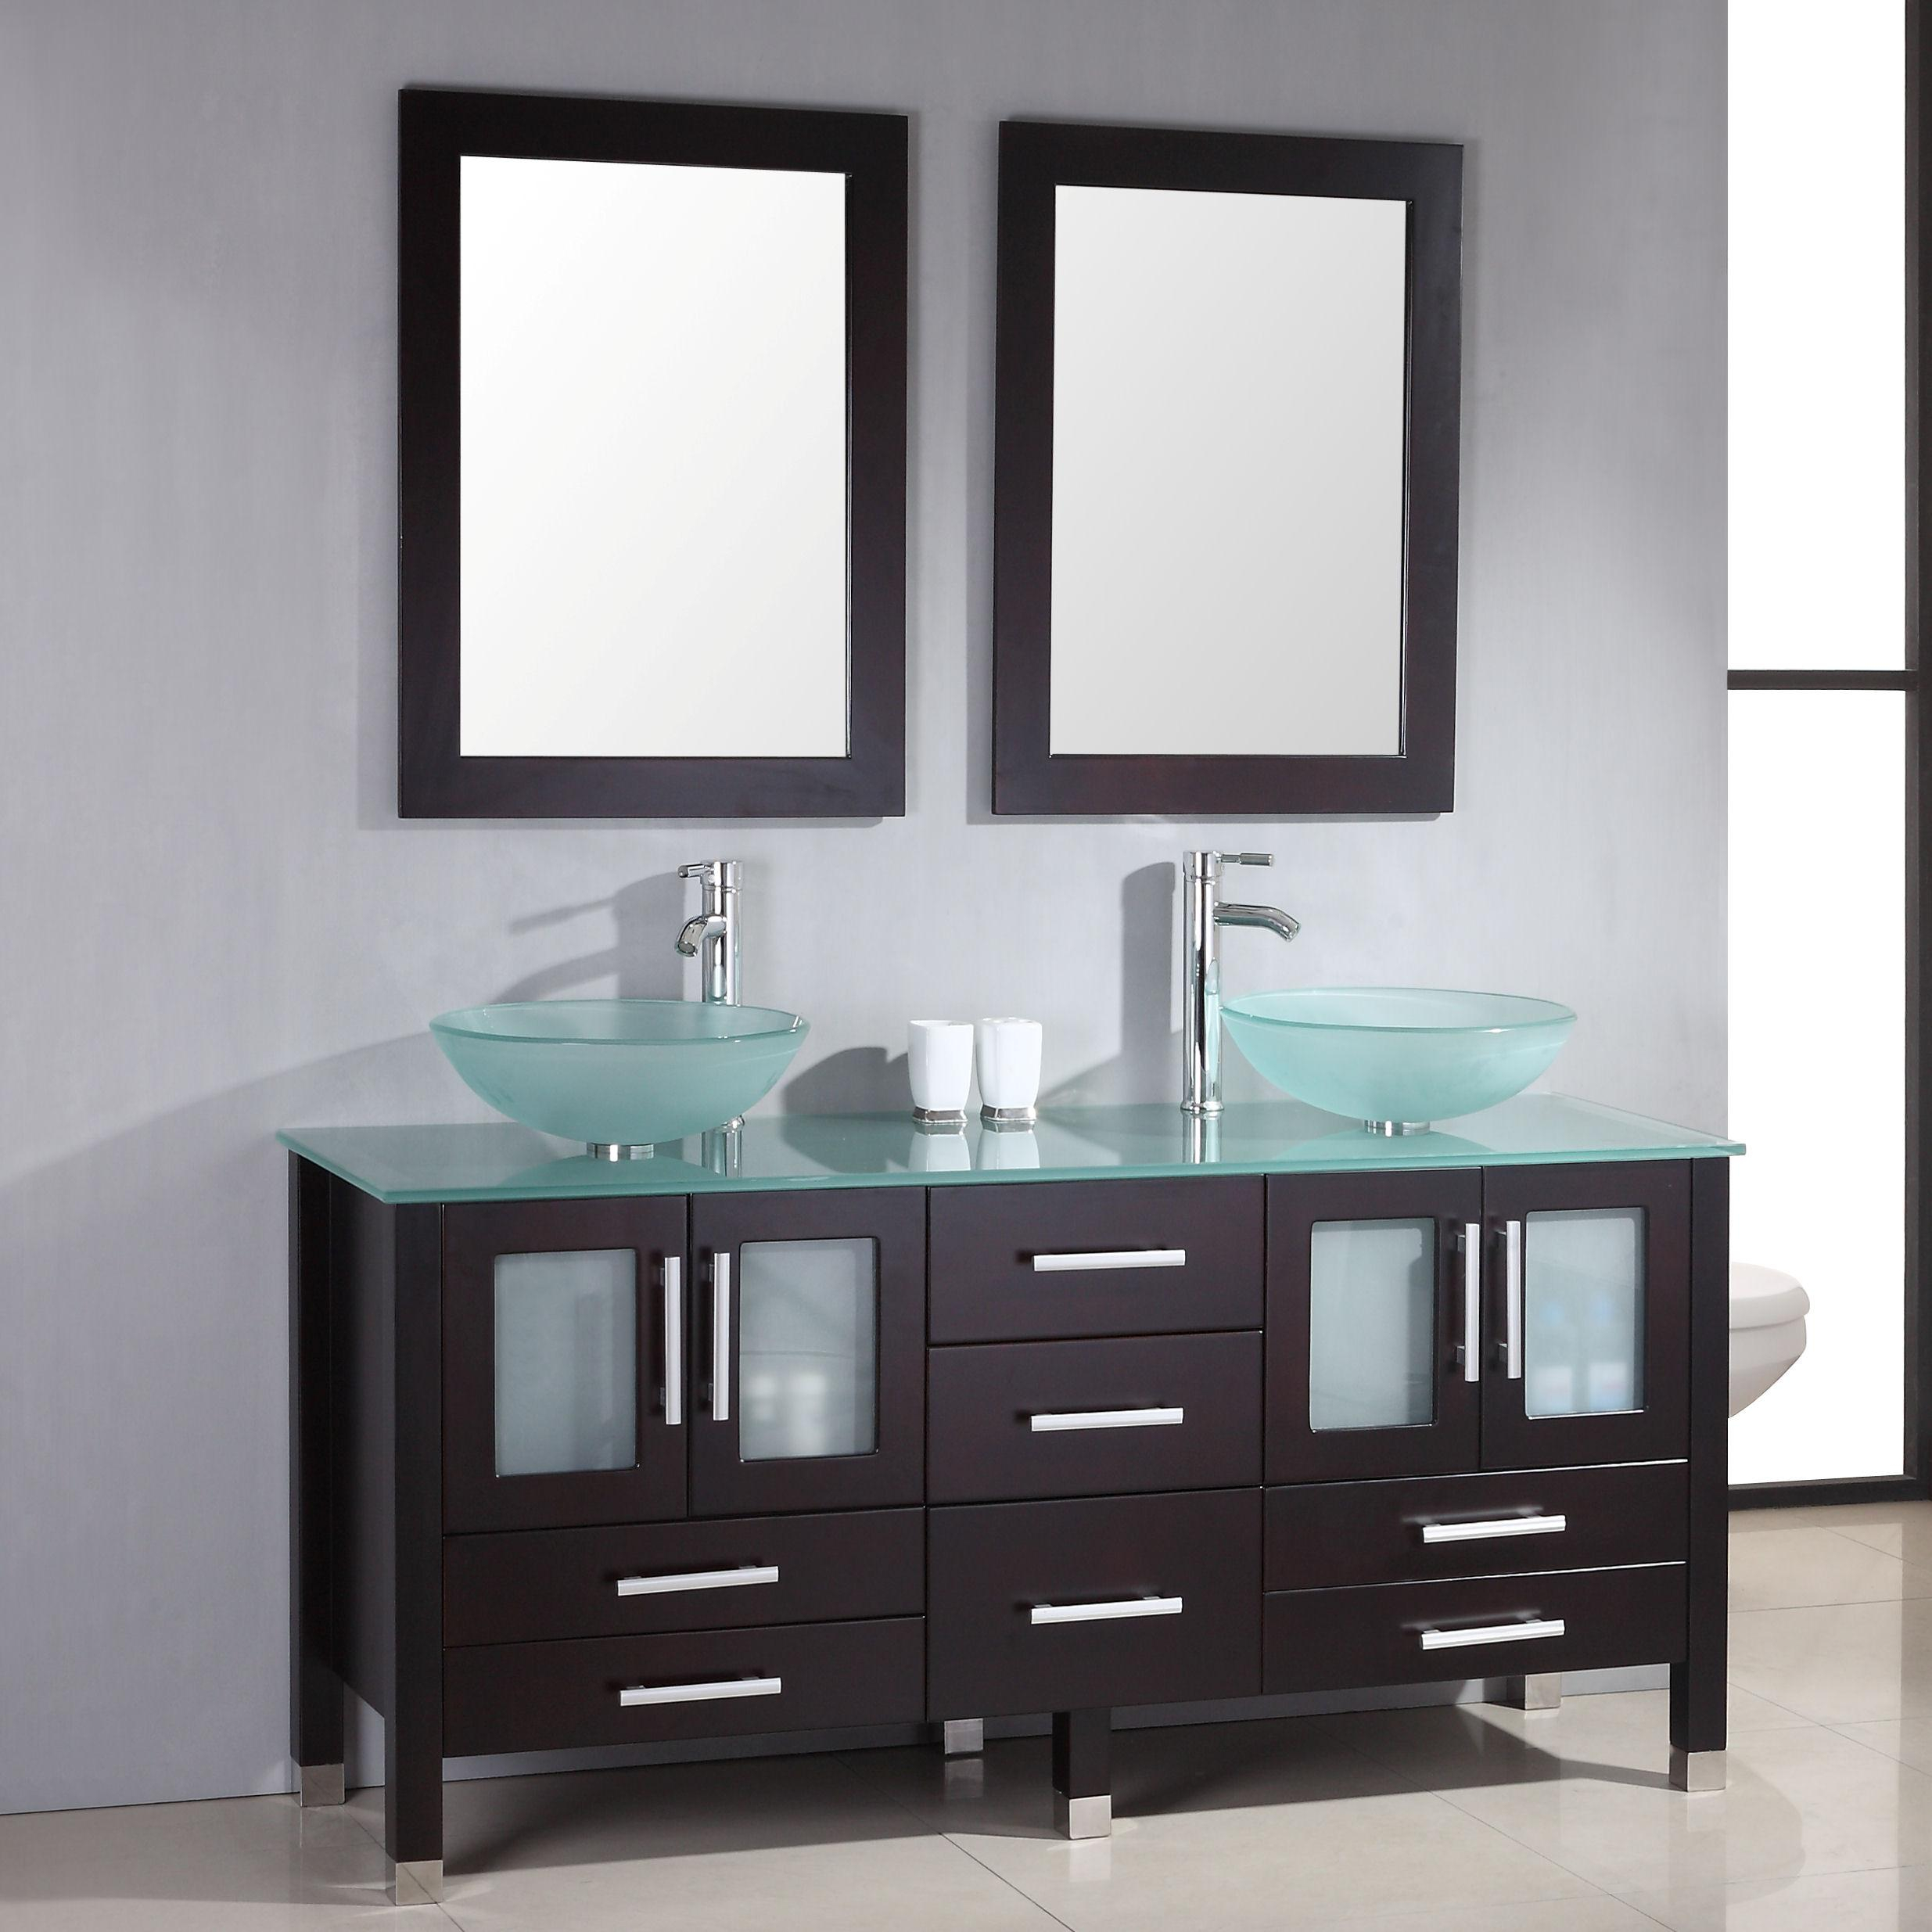 Fancy Bathroom : Gorgeous Bathroom Vanity Organizer Walmart Cabinets Only within Review Walmart Bathroom Vanities